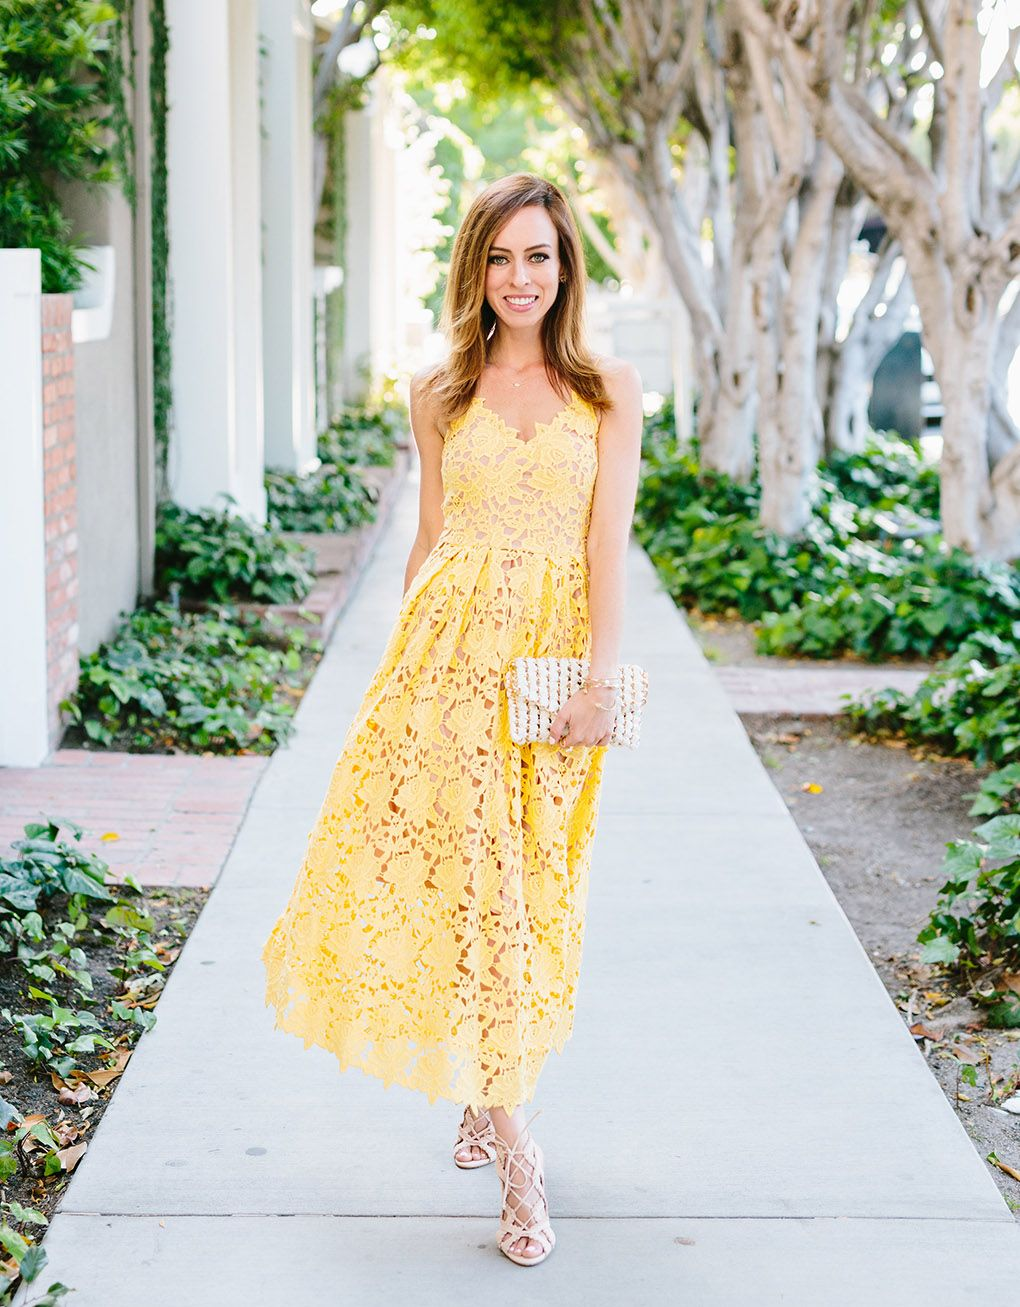 f228a4d39ea Sydne Style wears H m yellow lace dress inspired by Self Portrait celebrity  favorite